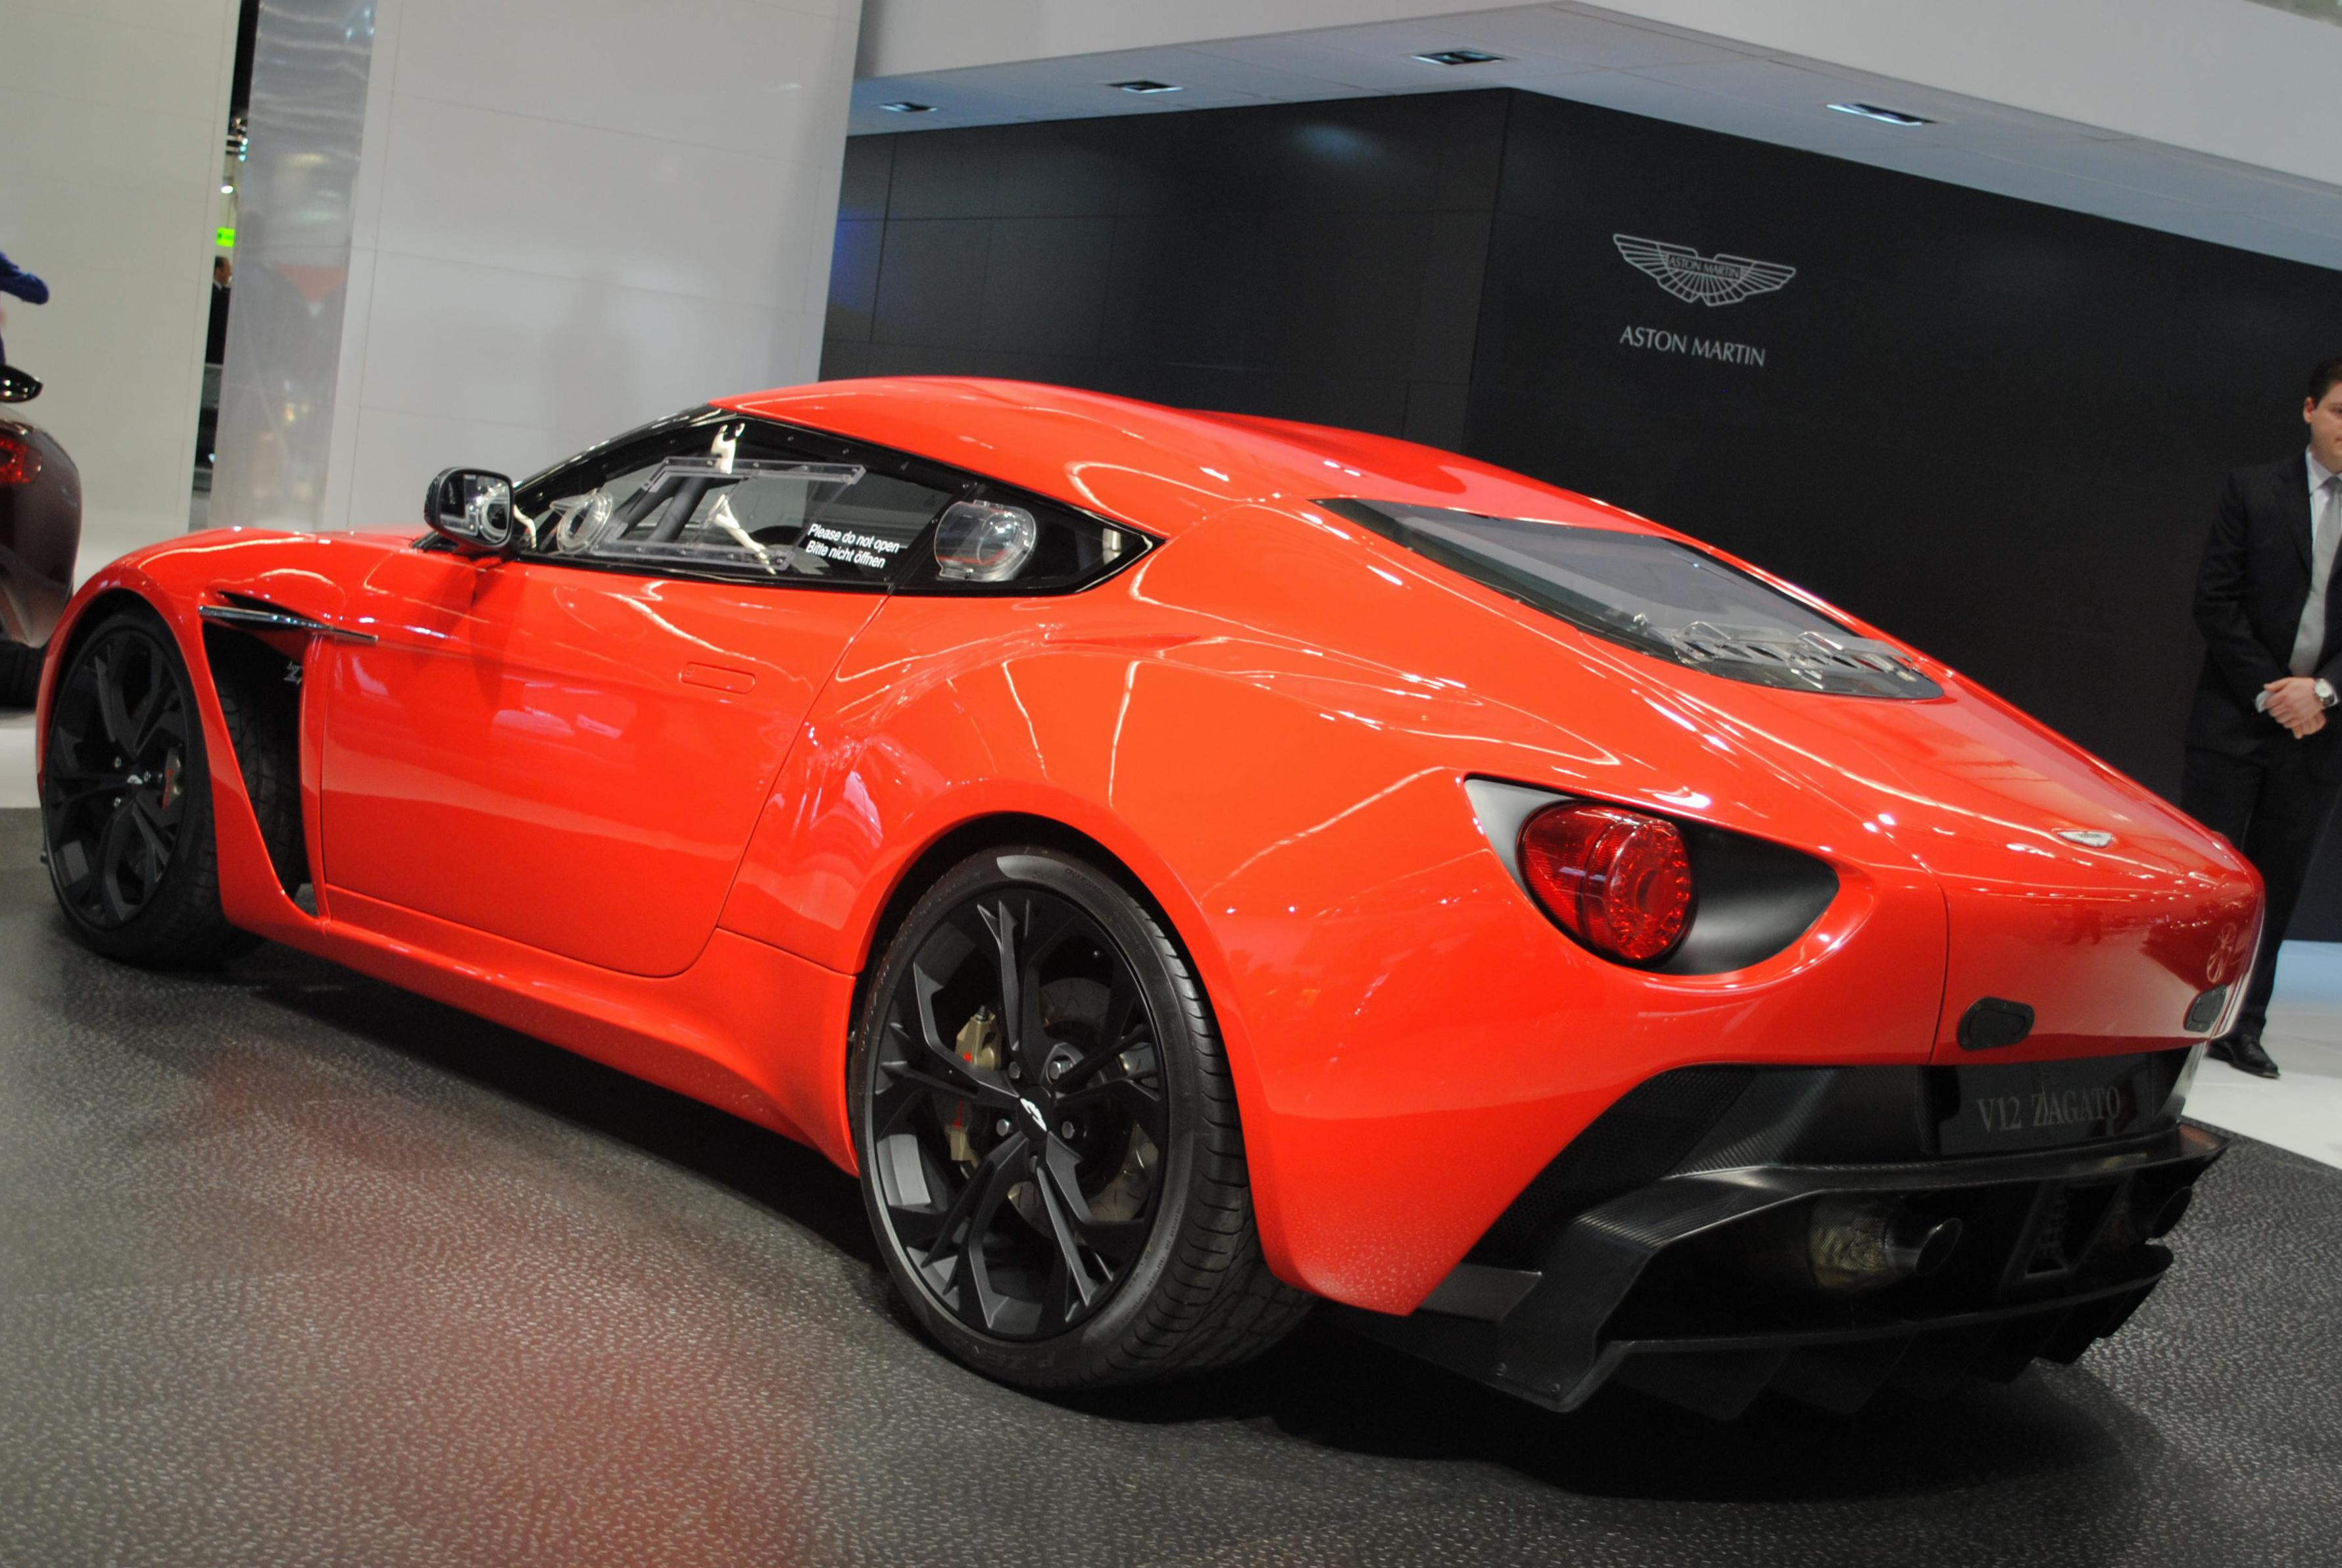 Aston Martin V12 Zagato model 2012